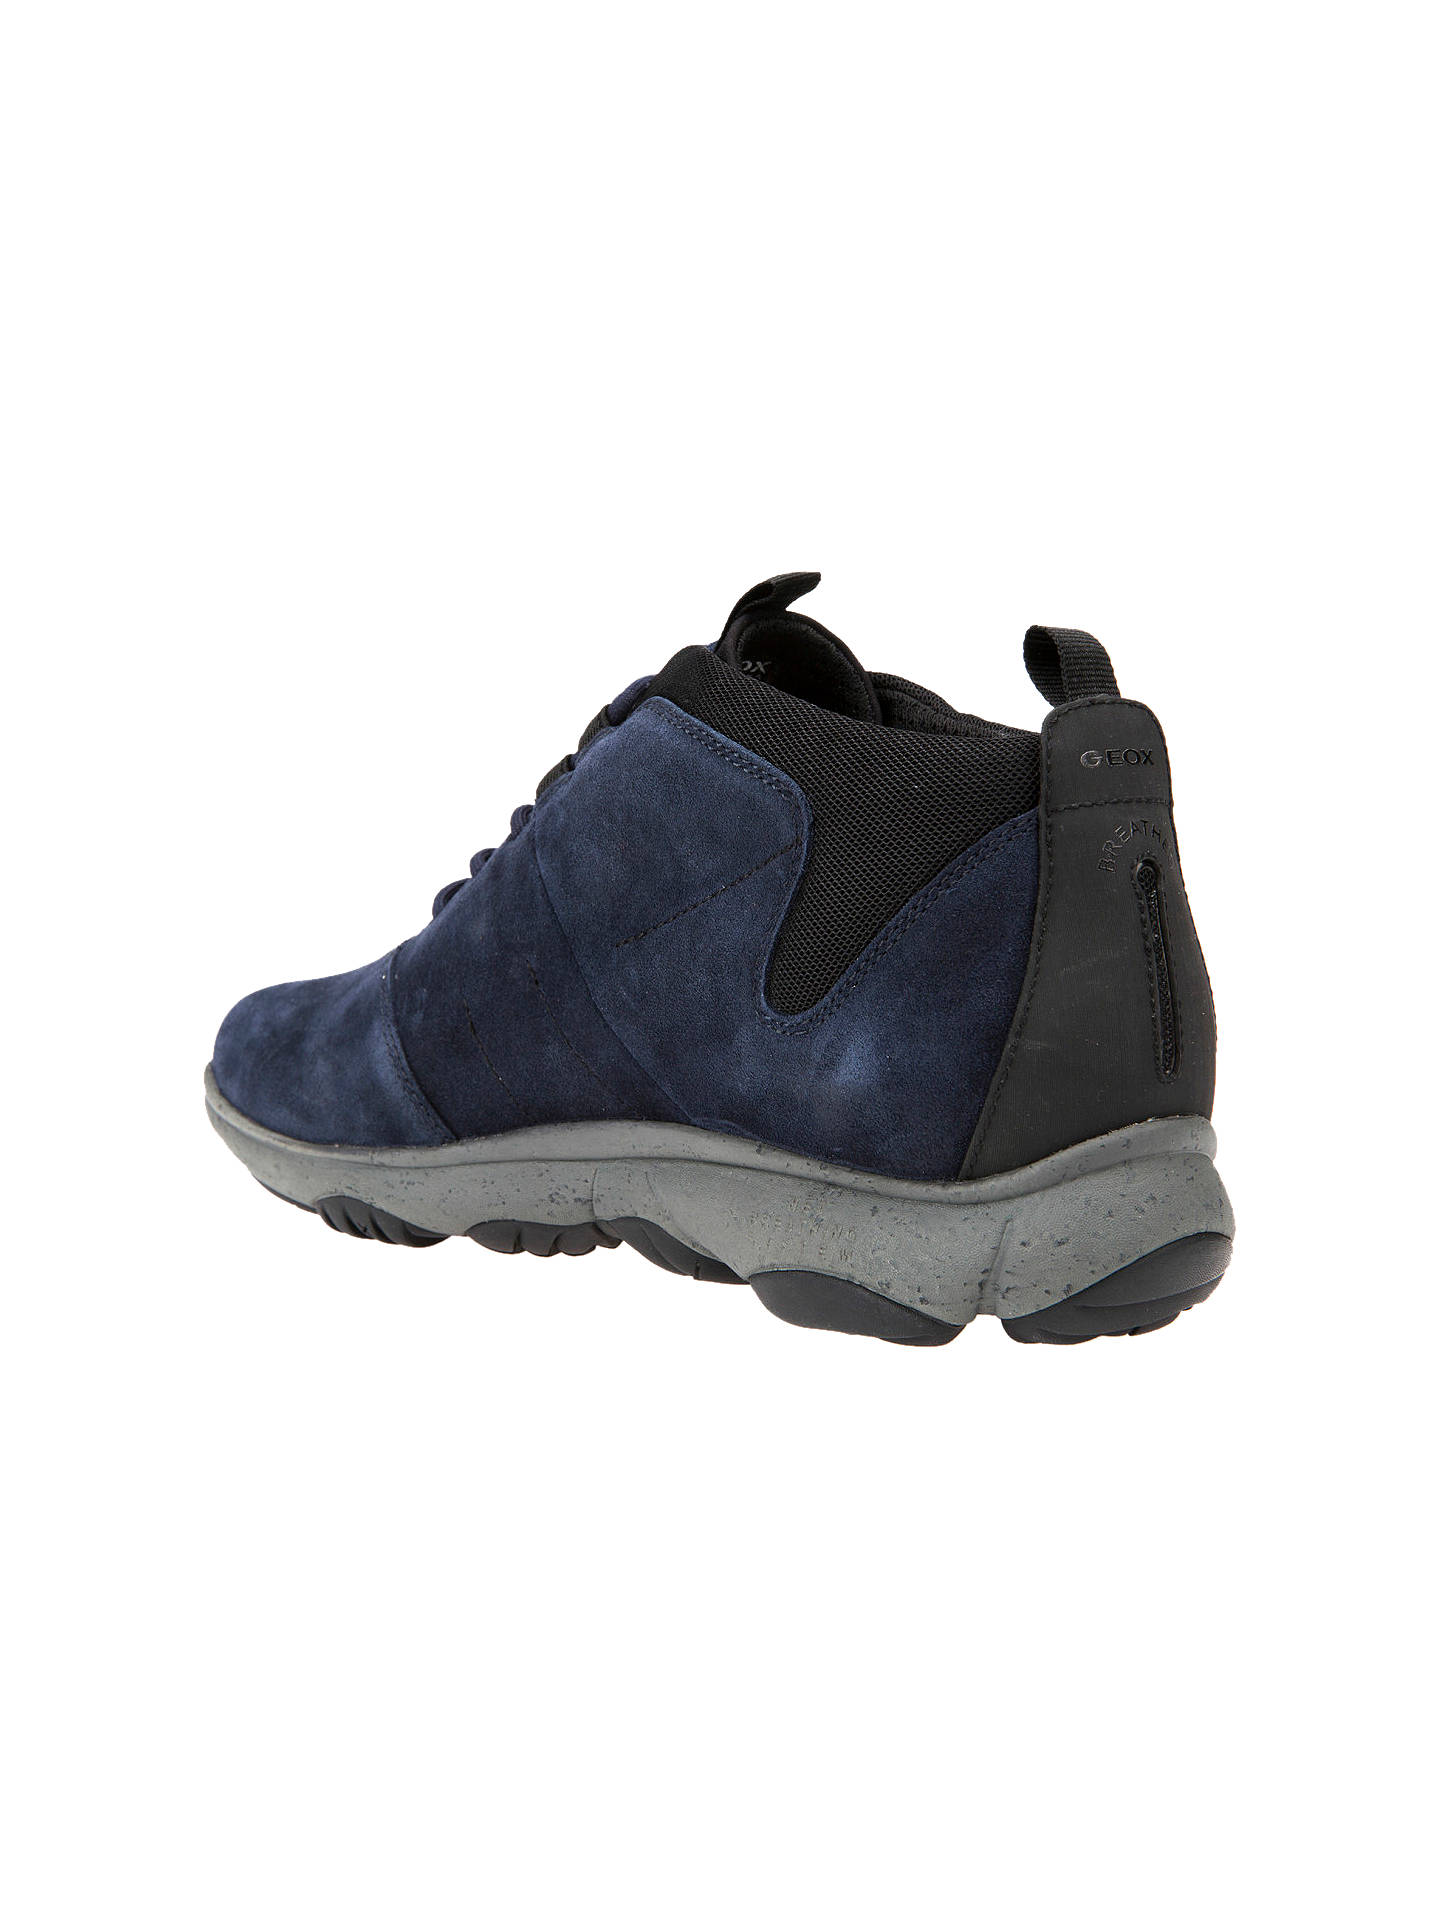 columpio Cuña donante  Geox Nebula Amphibiox Waterproof 4x4 Breathing Suede Trainers at John Lewis  & Partners